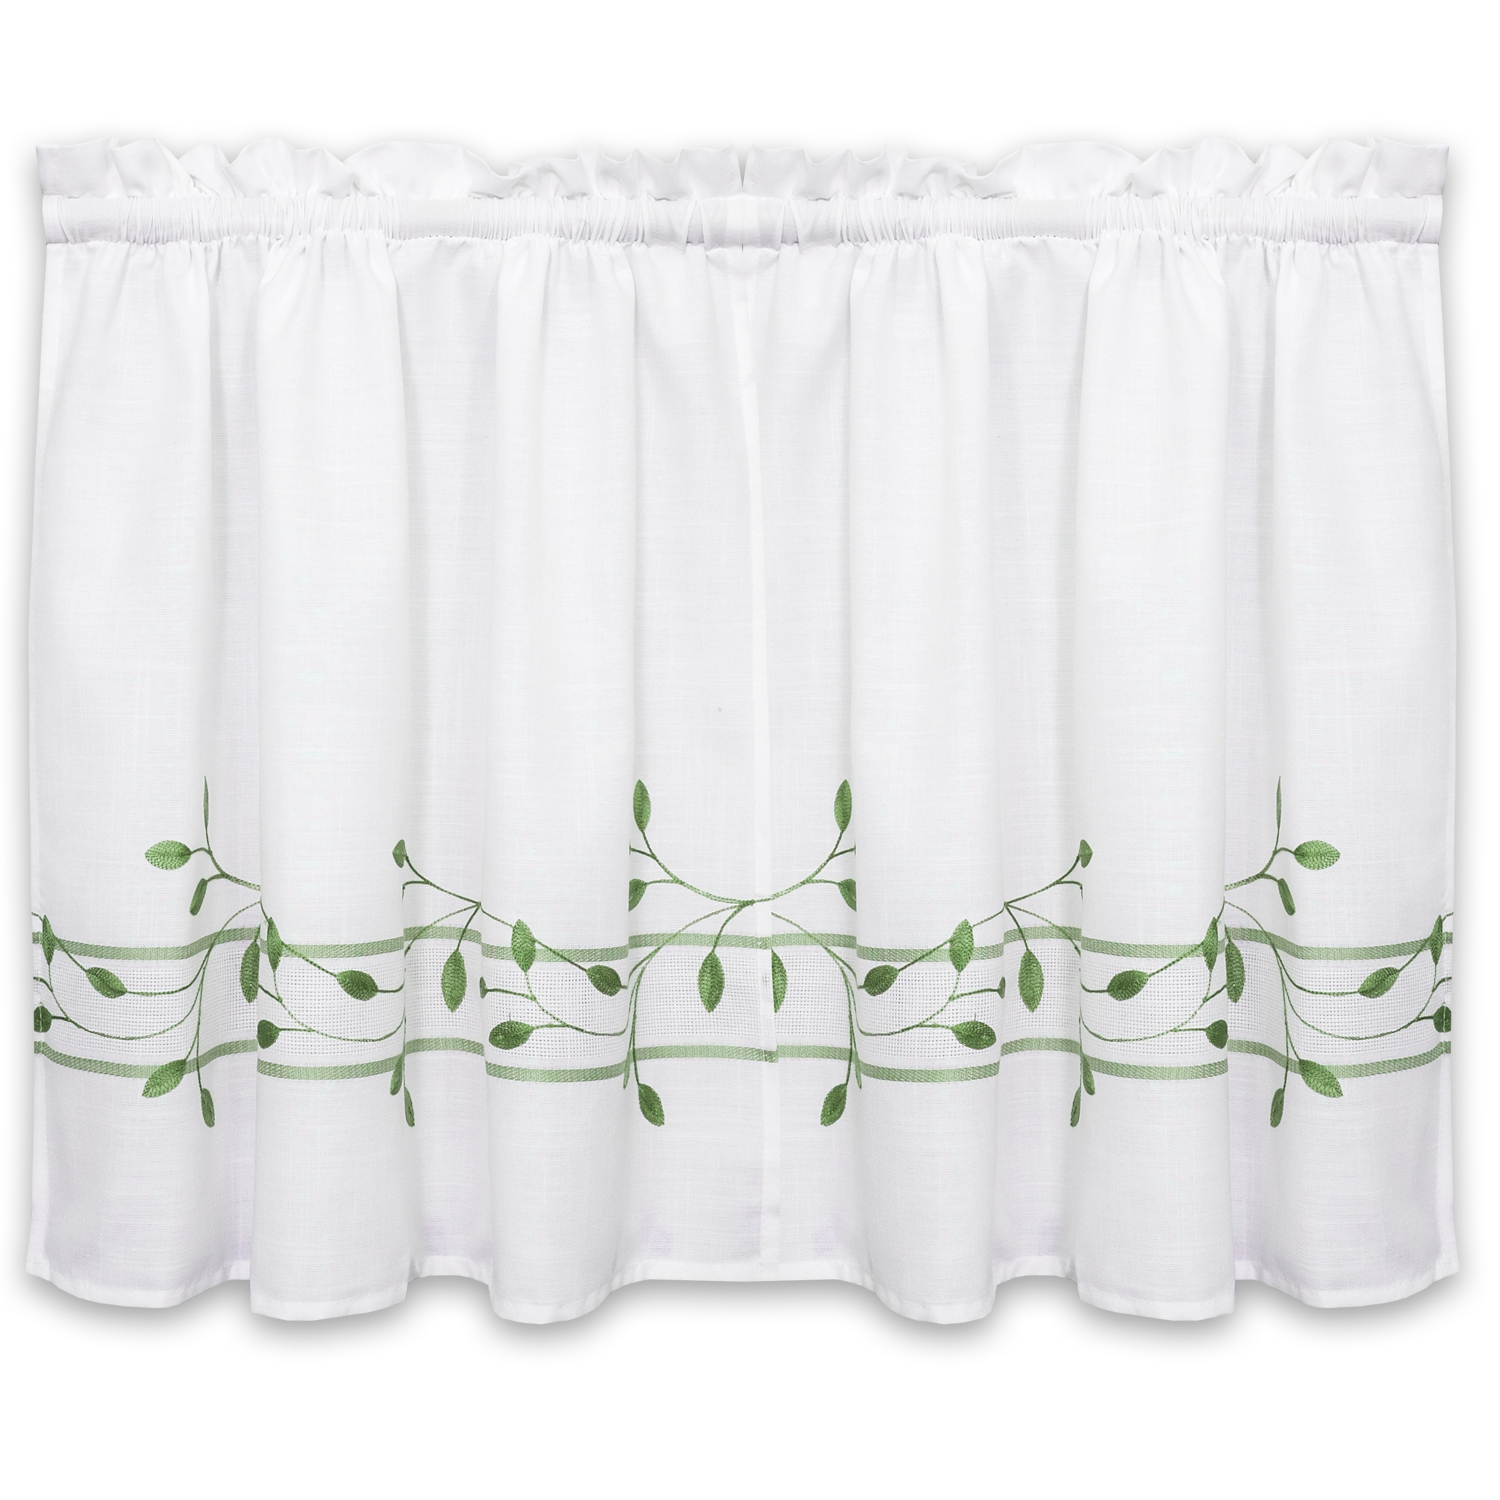 Trellis Scrolling Leaf Pattern Kitchen Window Curtain Tiers Or Valance Green – Walmart Within Well Known Trellis Pattern Window Valances (View 20 of 20)